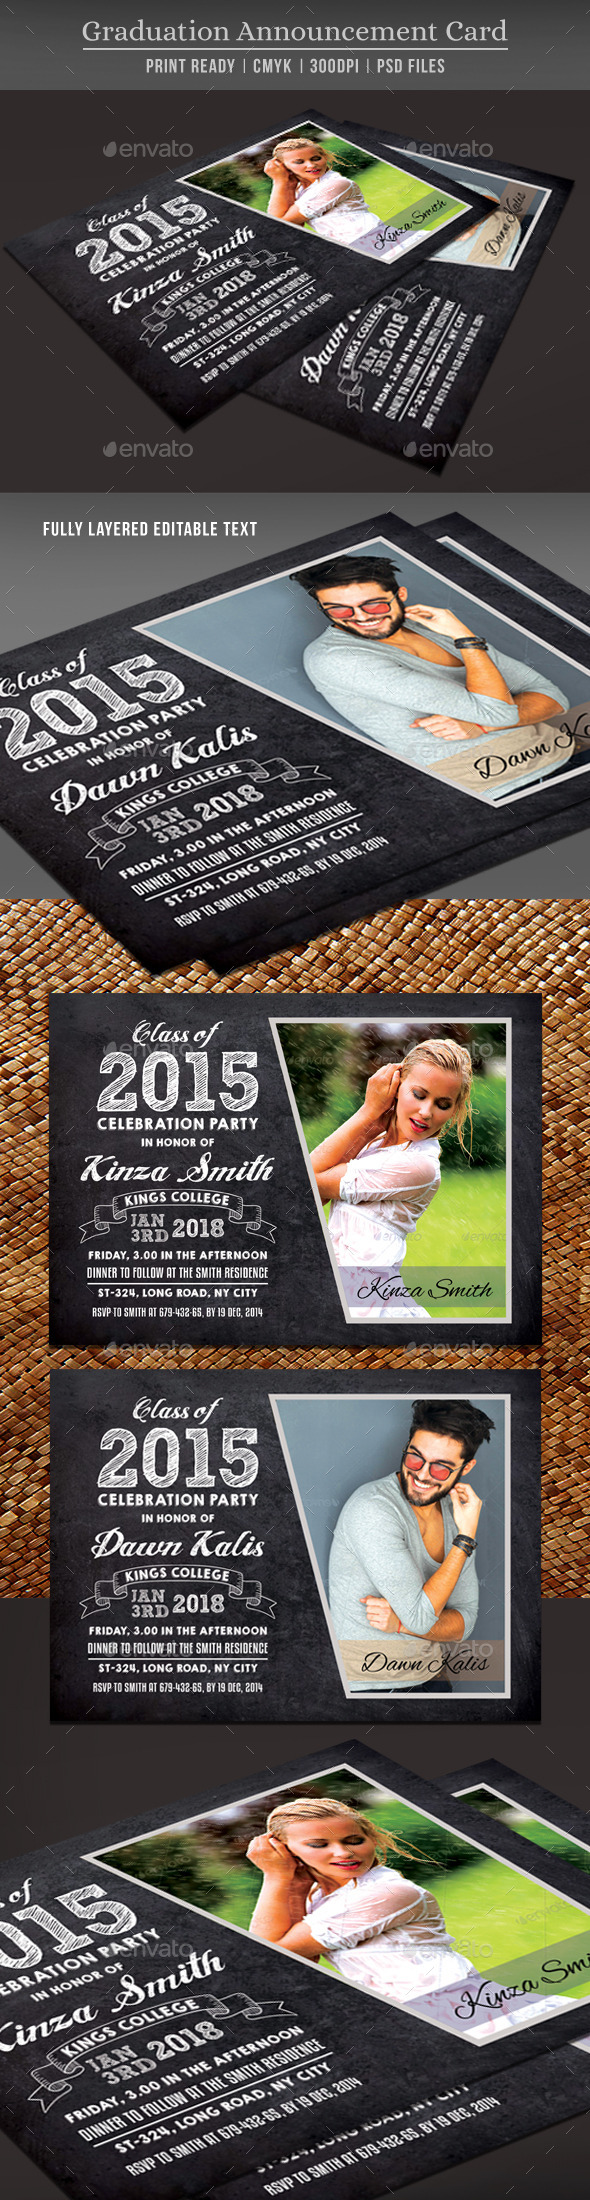 GraphicRiver Graduation Announcement Card 11007324